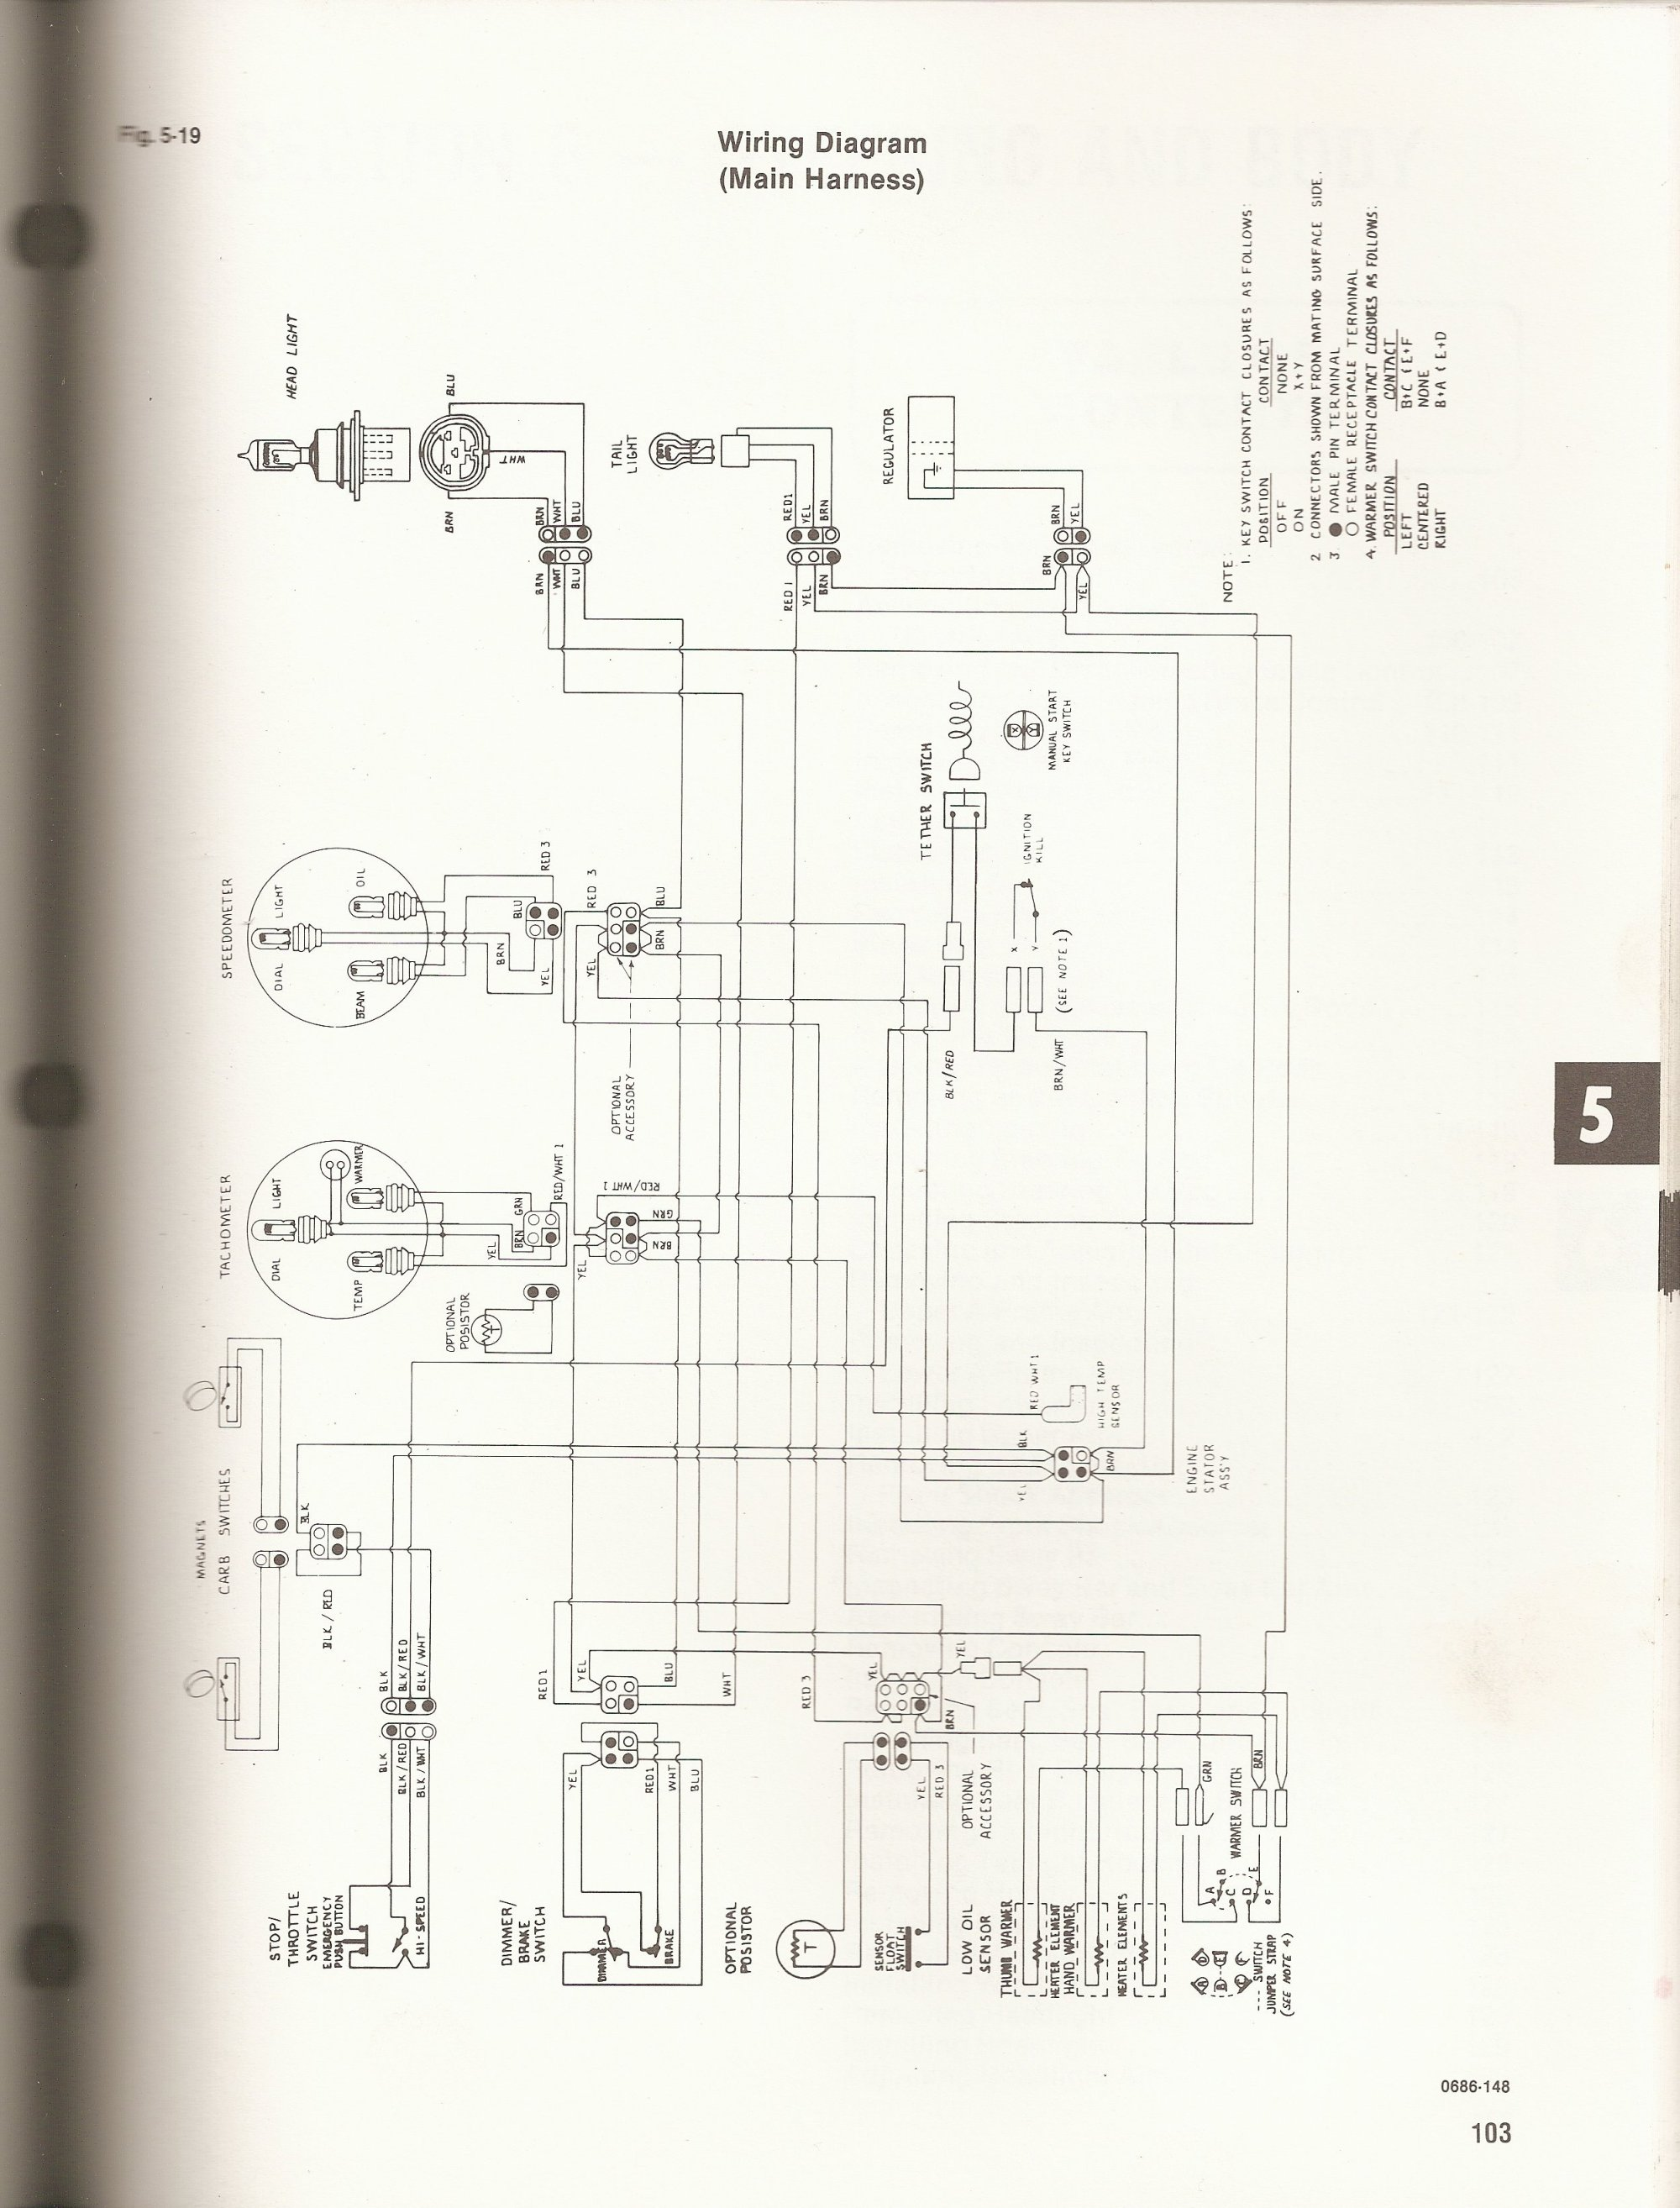 hight resolution of wildcat wiring diagram wiring diagram wildcat x wiring diagram 1992 wildcat wiring diagram arcticchat com arctic